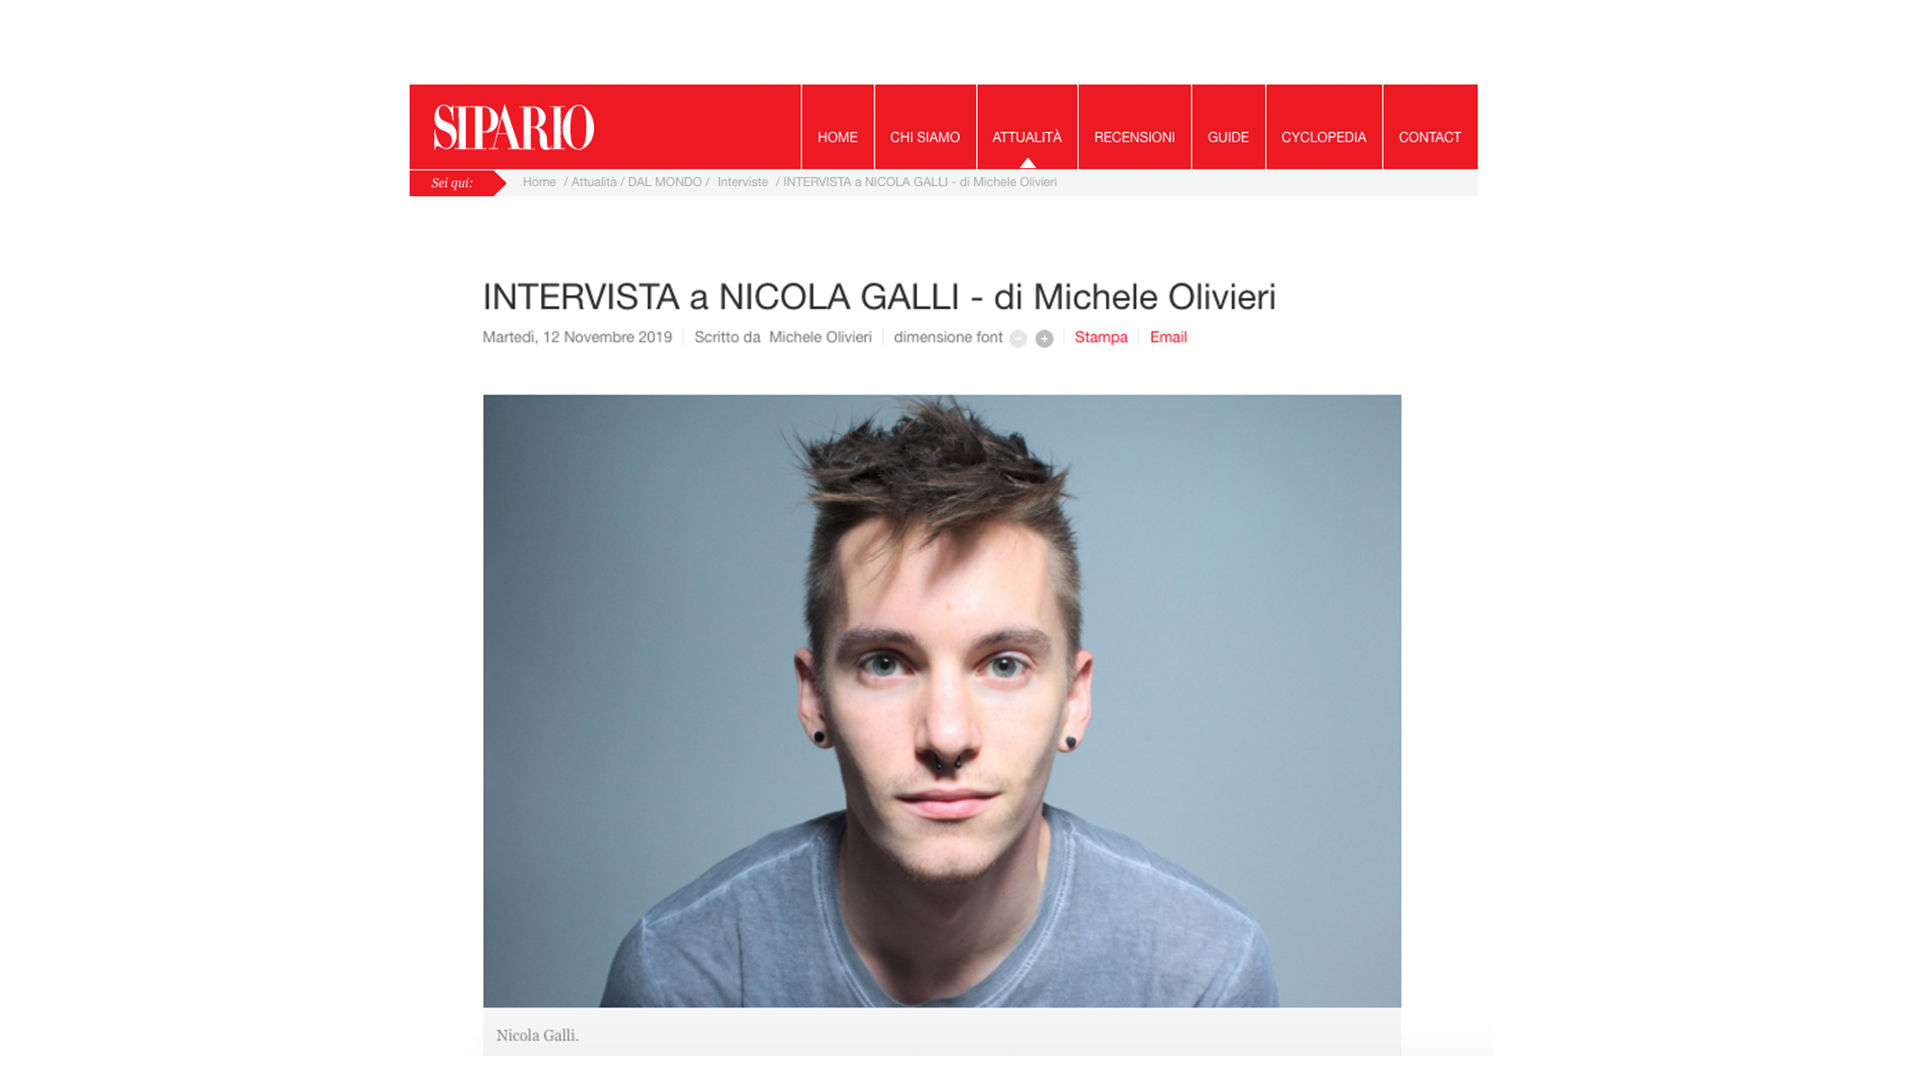 Intervista a Nicola Galli / Sipario